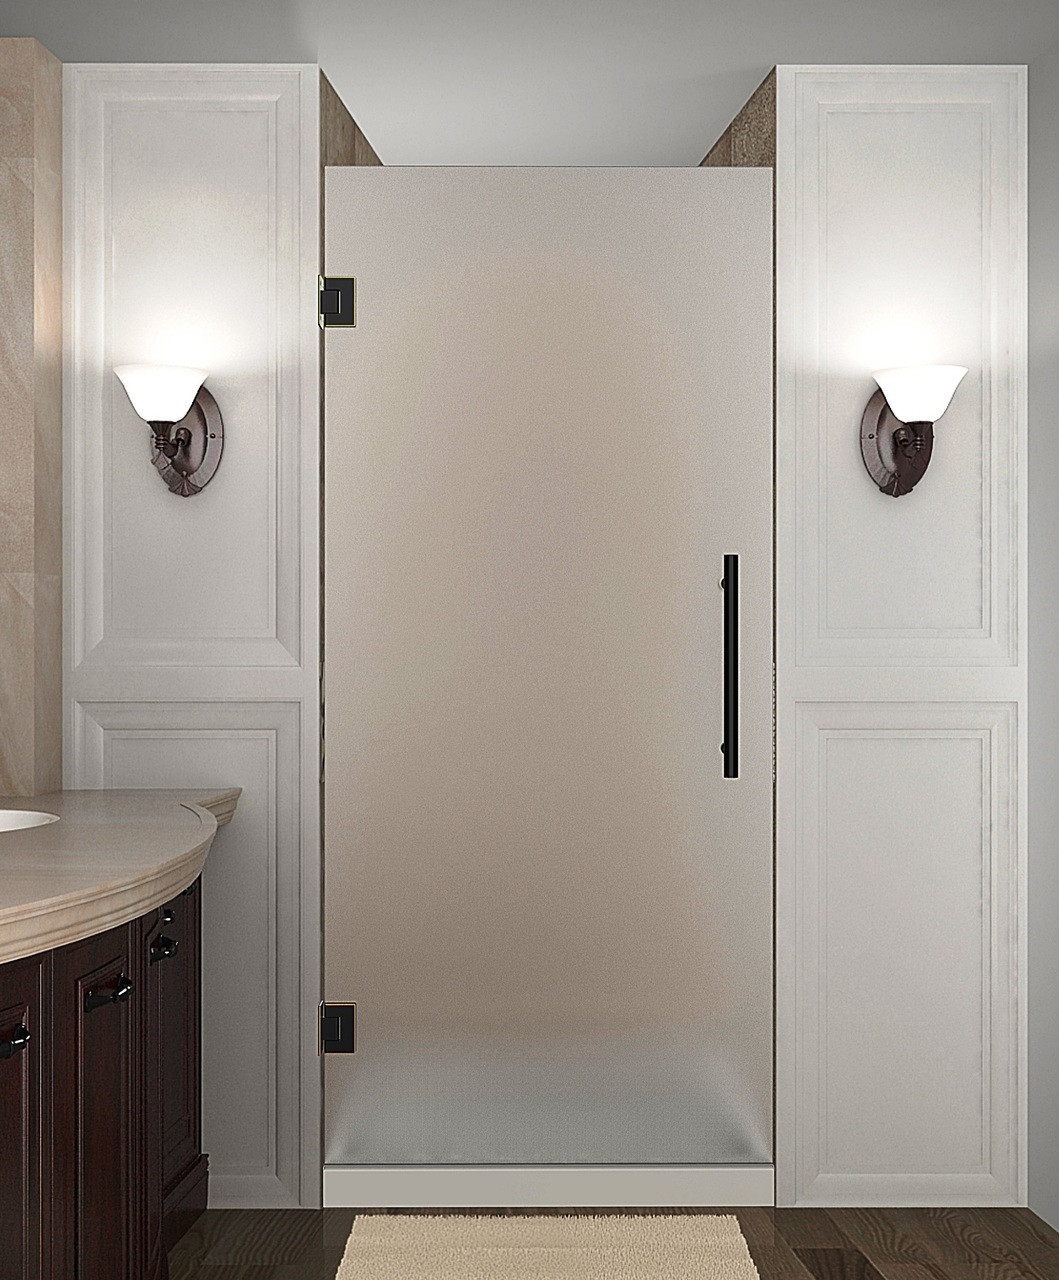 Aston SDR995F-ORB-30-10 30 In x 72 In Hinged Frosted Glass Shower Door In Oil Rubbed Bronze